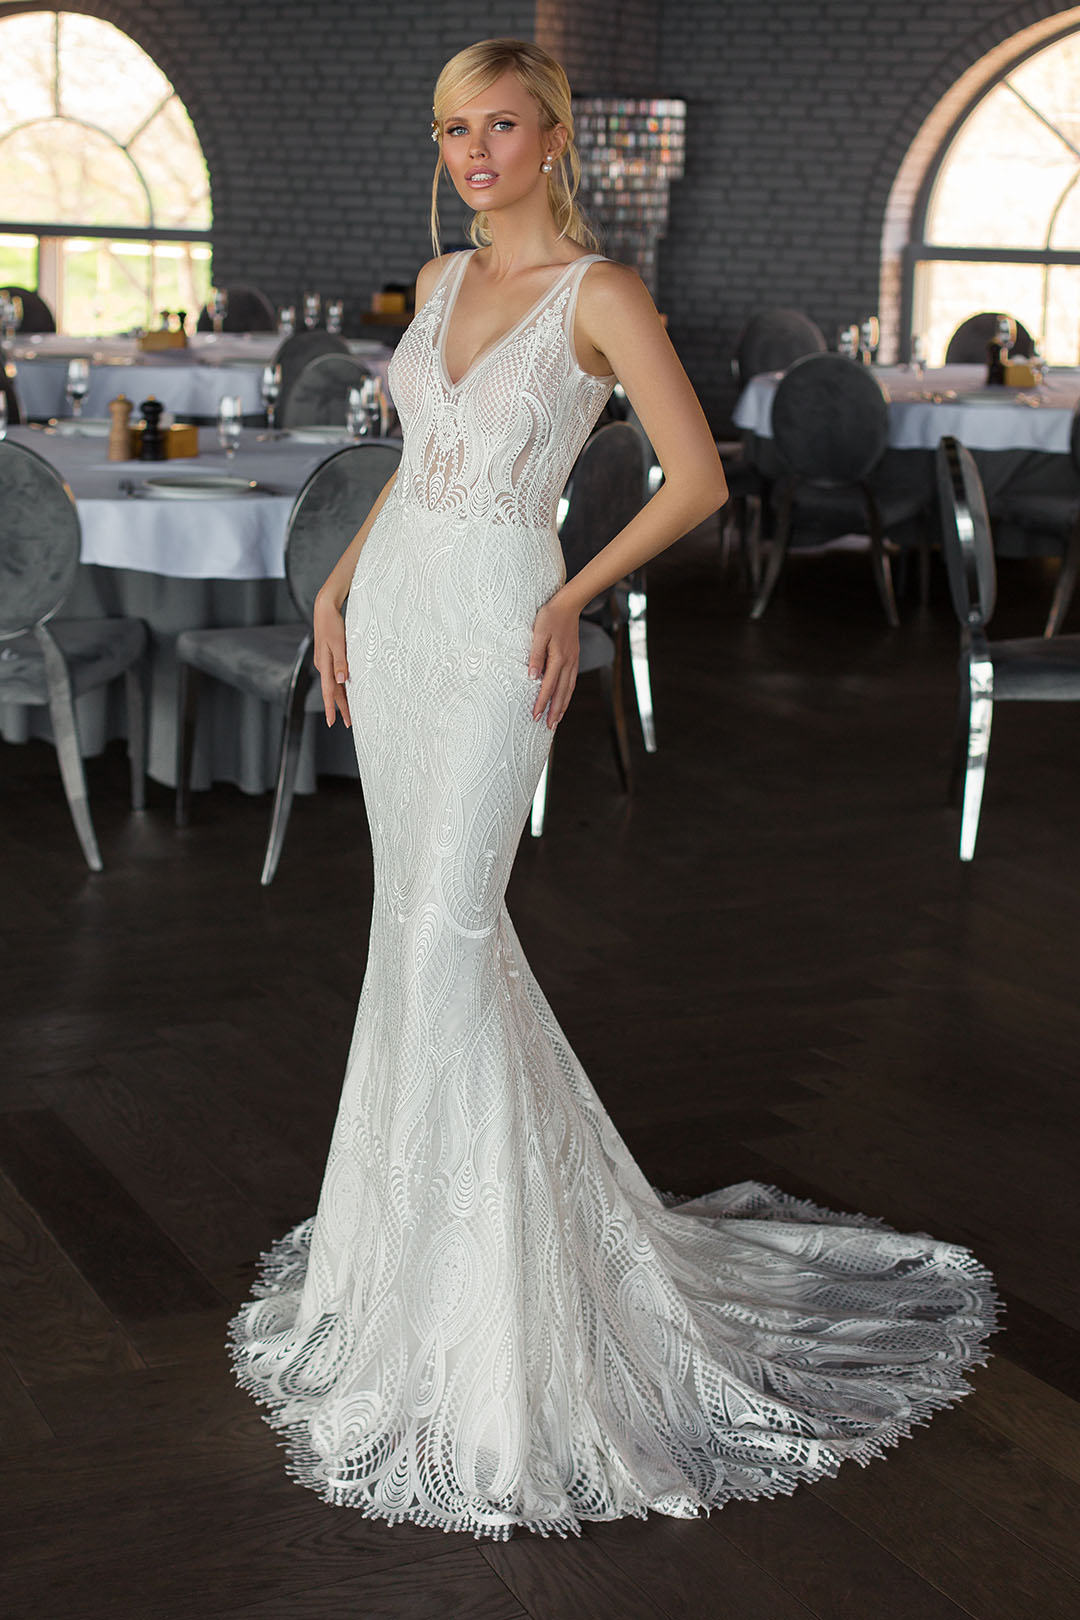 Buy wedding dress Altina from the producer   Anna Sposa Group